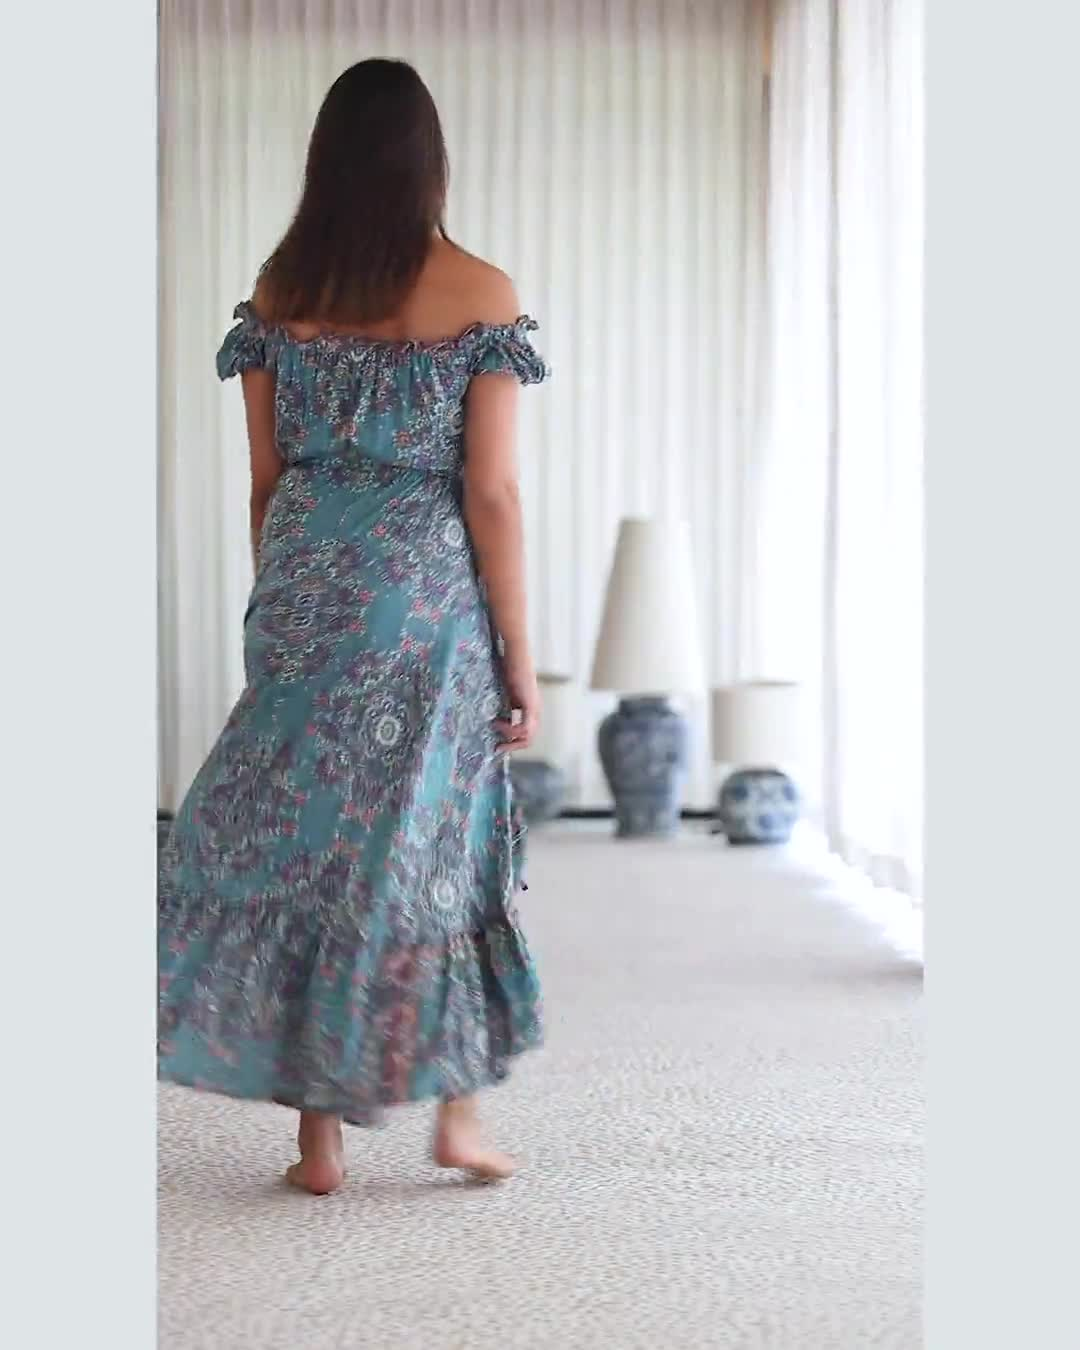 Off-Shoulder Teal Dress - Video